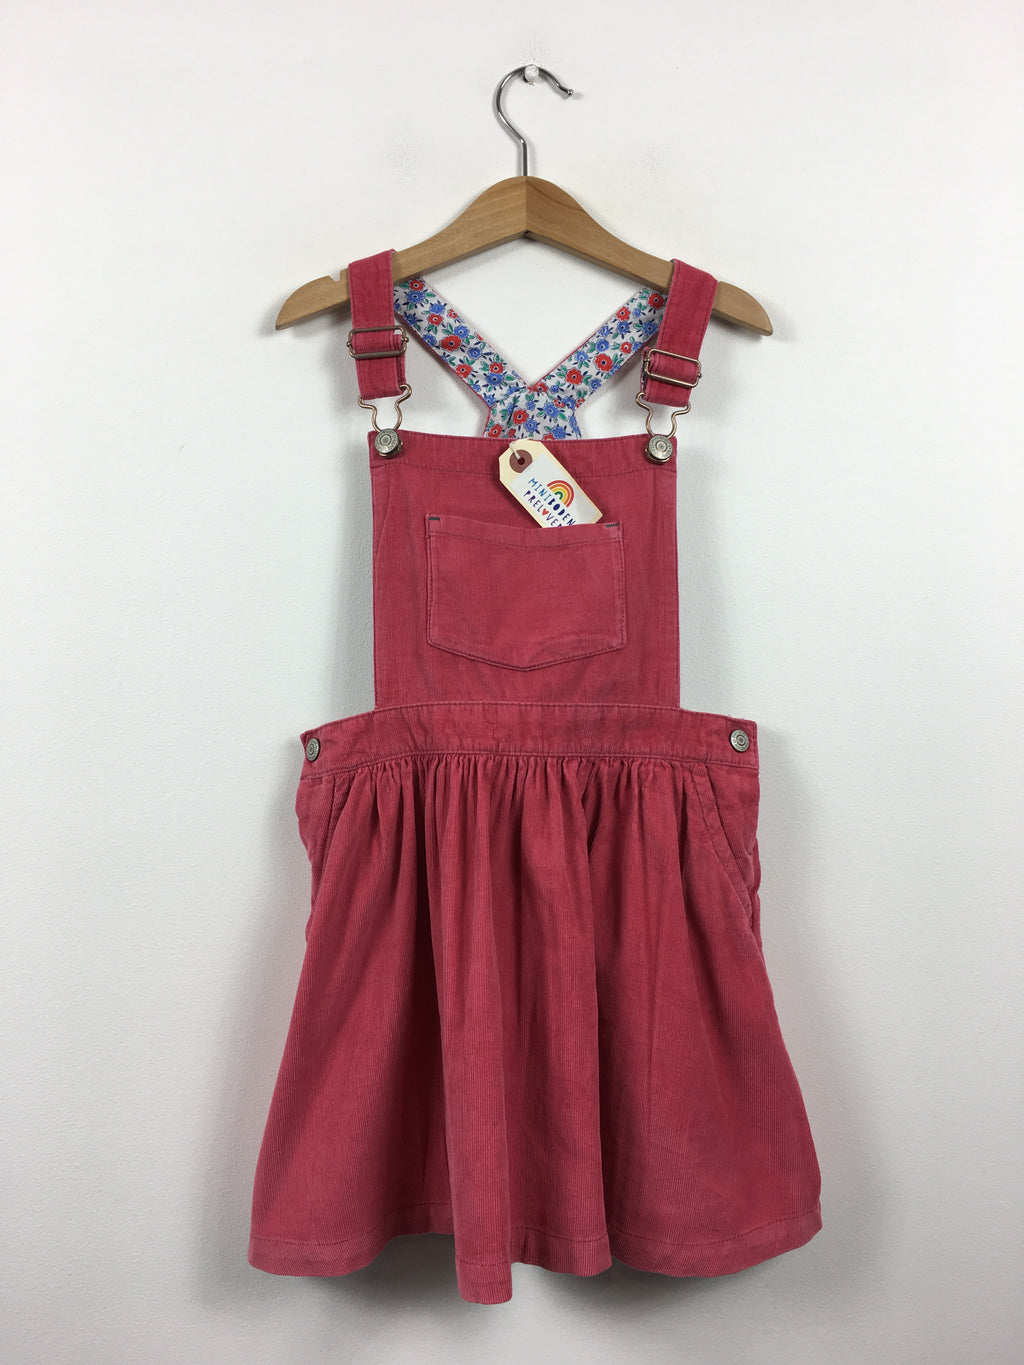 Lovely Raspberry Needle Cord Dungaree Dress (6-7 Years)